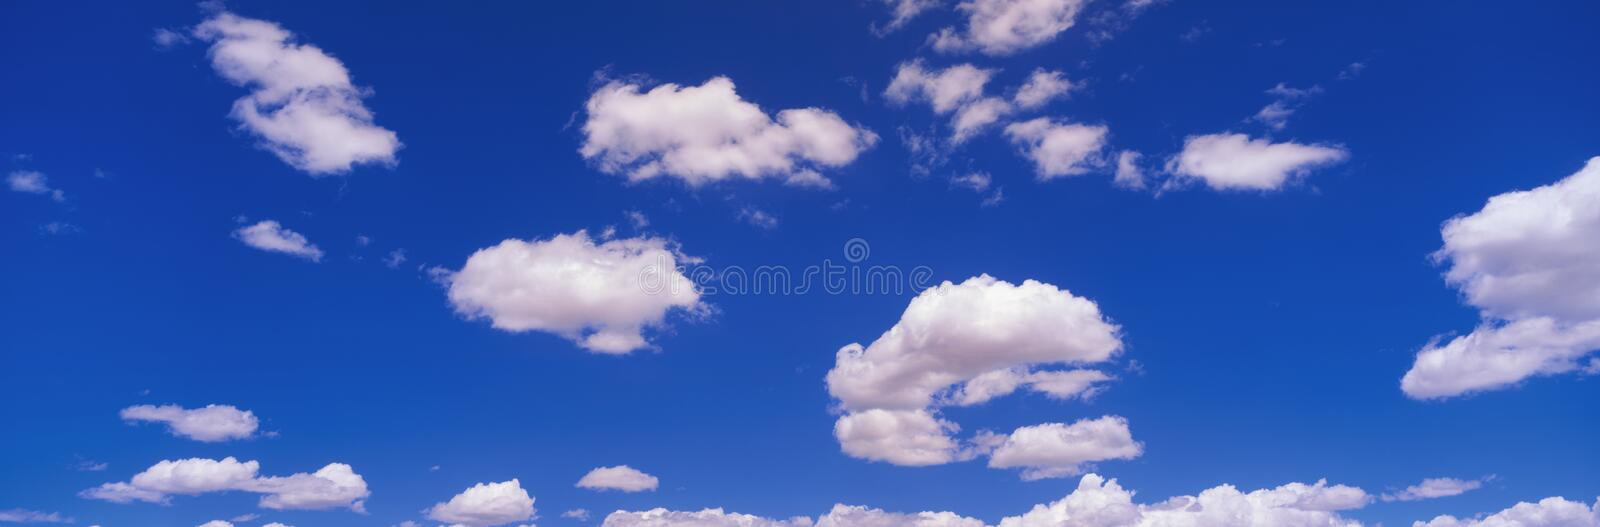 Download White Puffy Clouds And Blue Sky Stock Photo - Image: 23151252